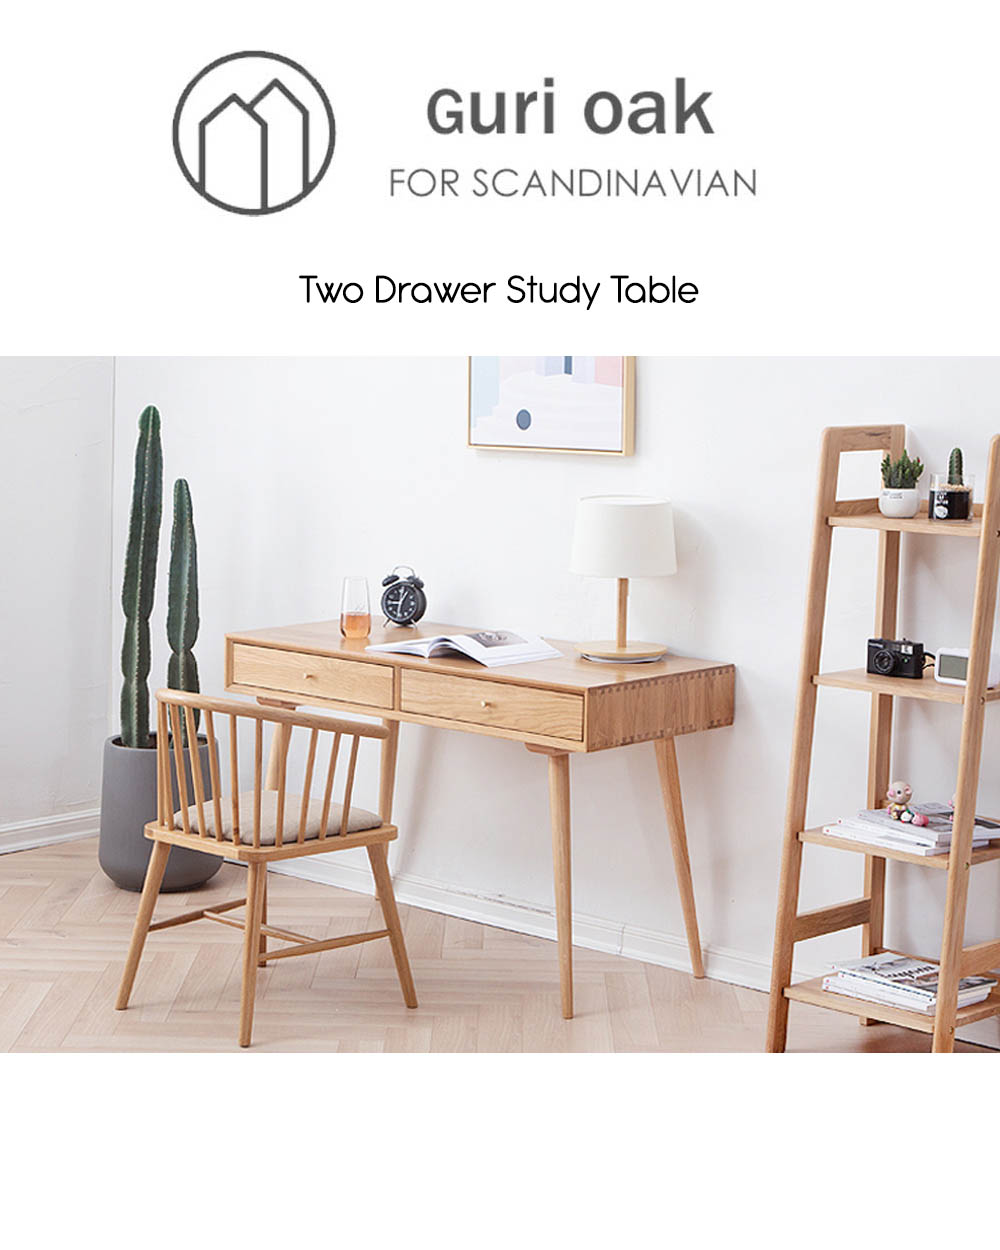 Guri_Scandinavian_Solid_Wood_2_Drawer_Study_Table_cover_specs_by_born_in_colour